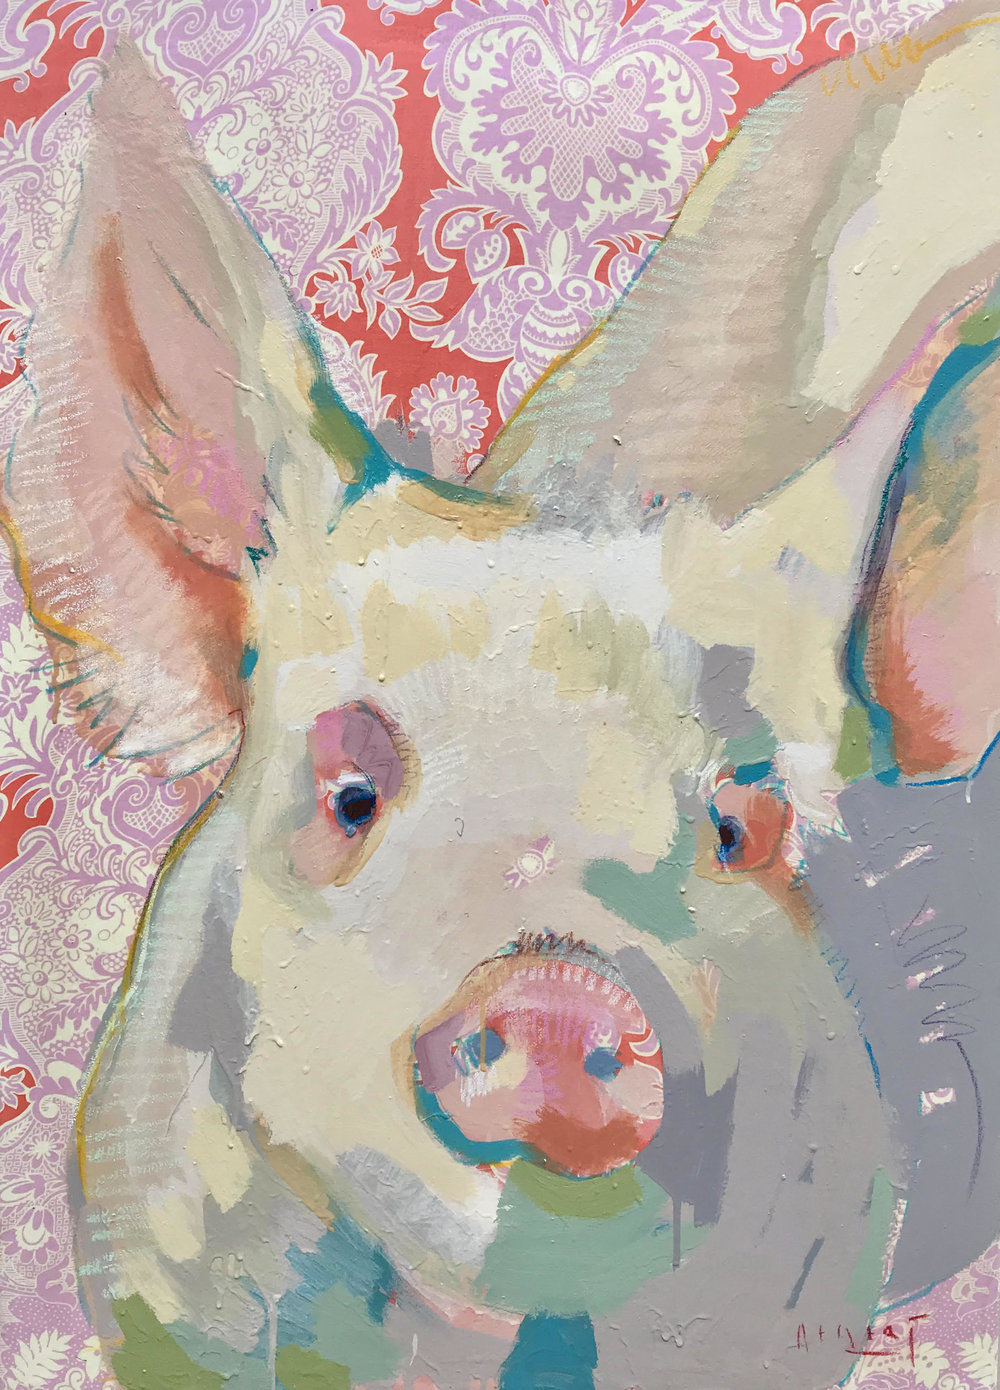 Tim Jaeger, Oink no. 16, 2018